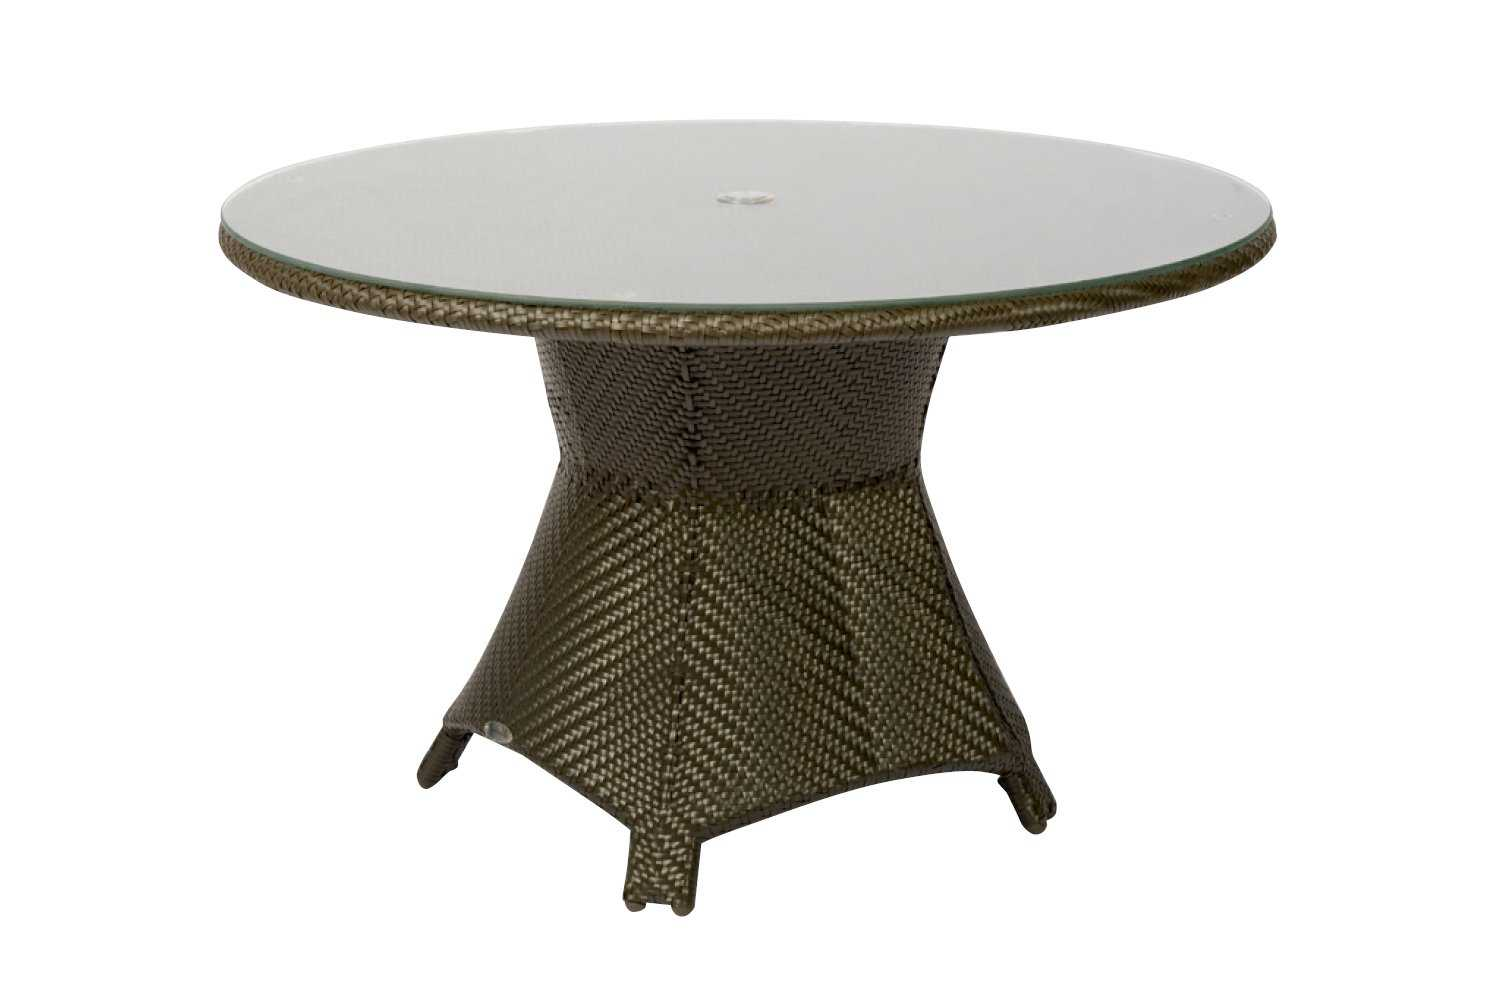 Marvelous photograph of Woodard Trinidad Wicker 48 Round Glass Top Table with Umbrella Hole  with #3C3524 color and 1500x1000 pixels